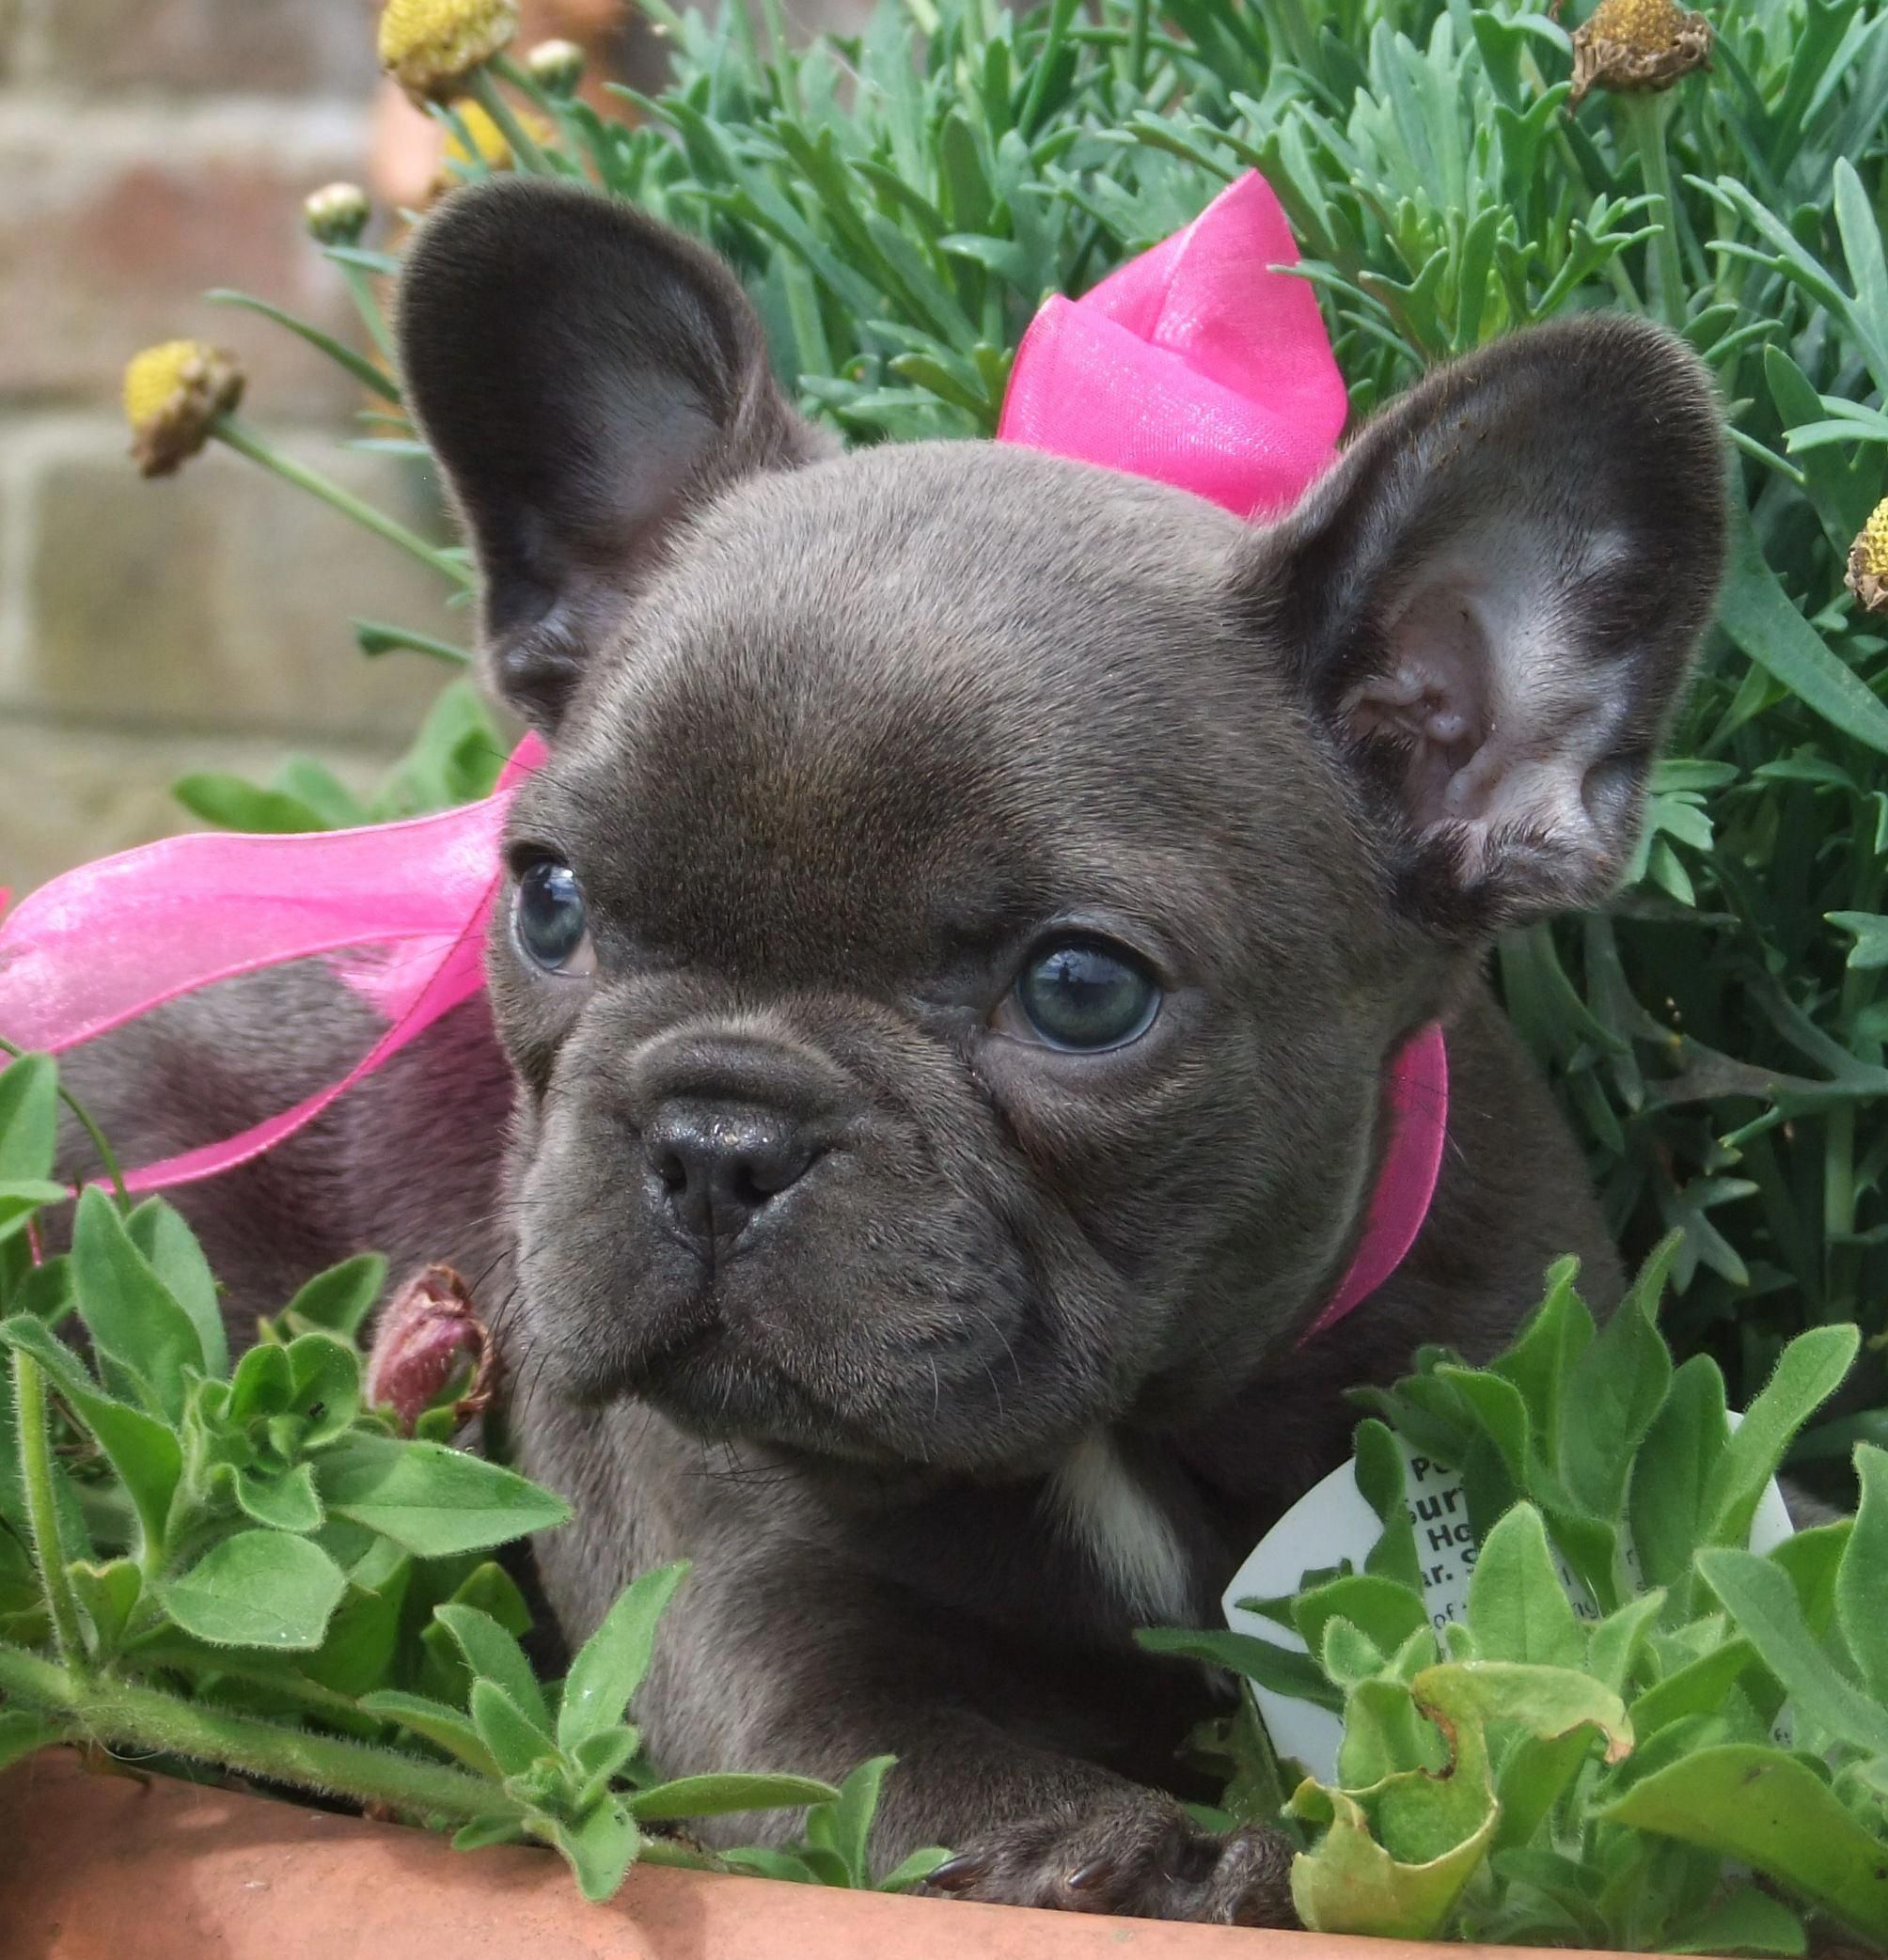 Amazing Blue French Bulldog Puppy In Flowers With Pink Ribbon